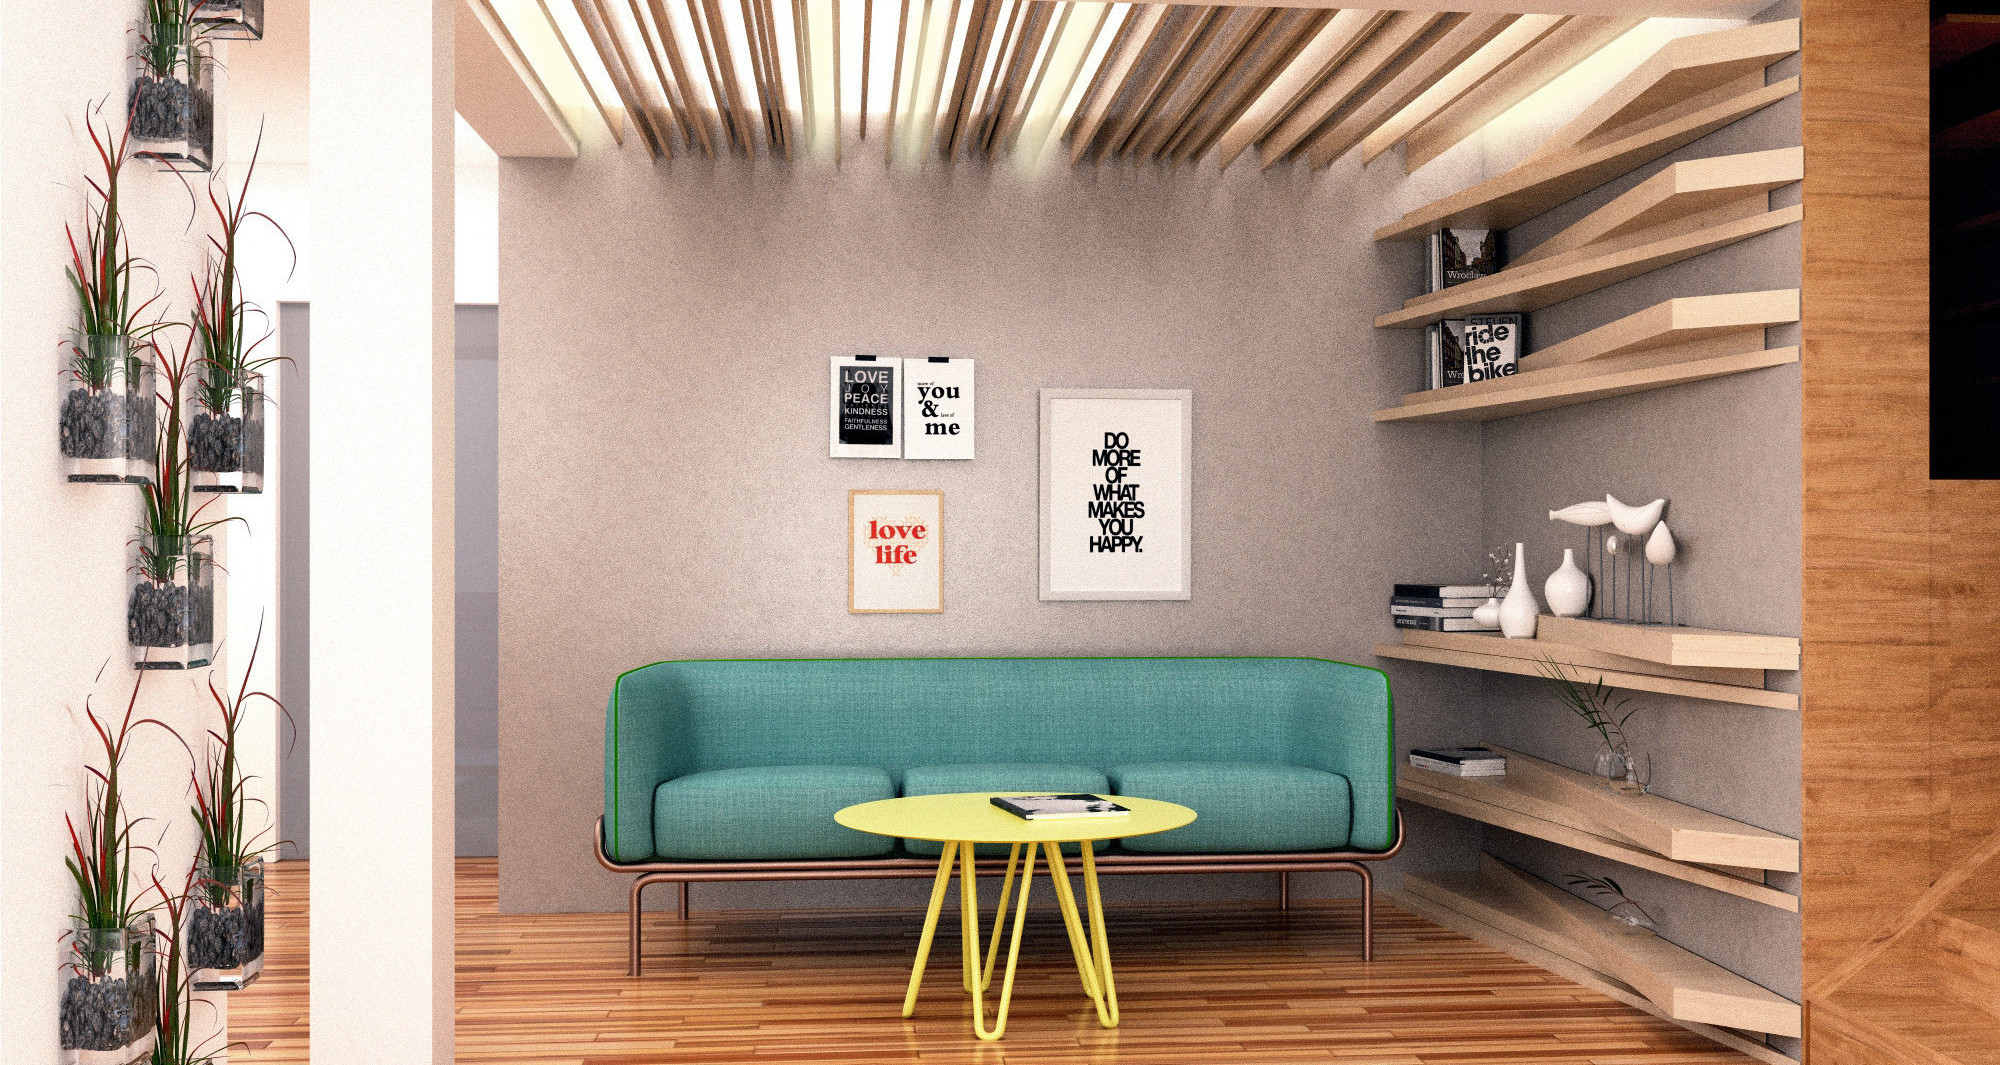 Psychotherapy center 01_Aria Concept